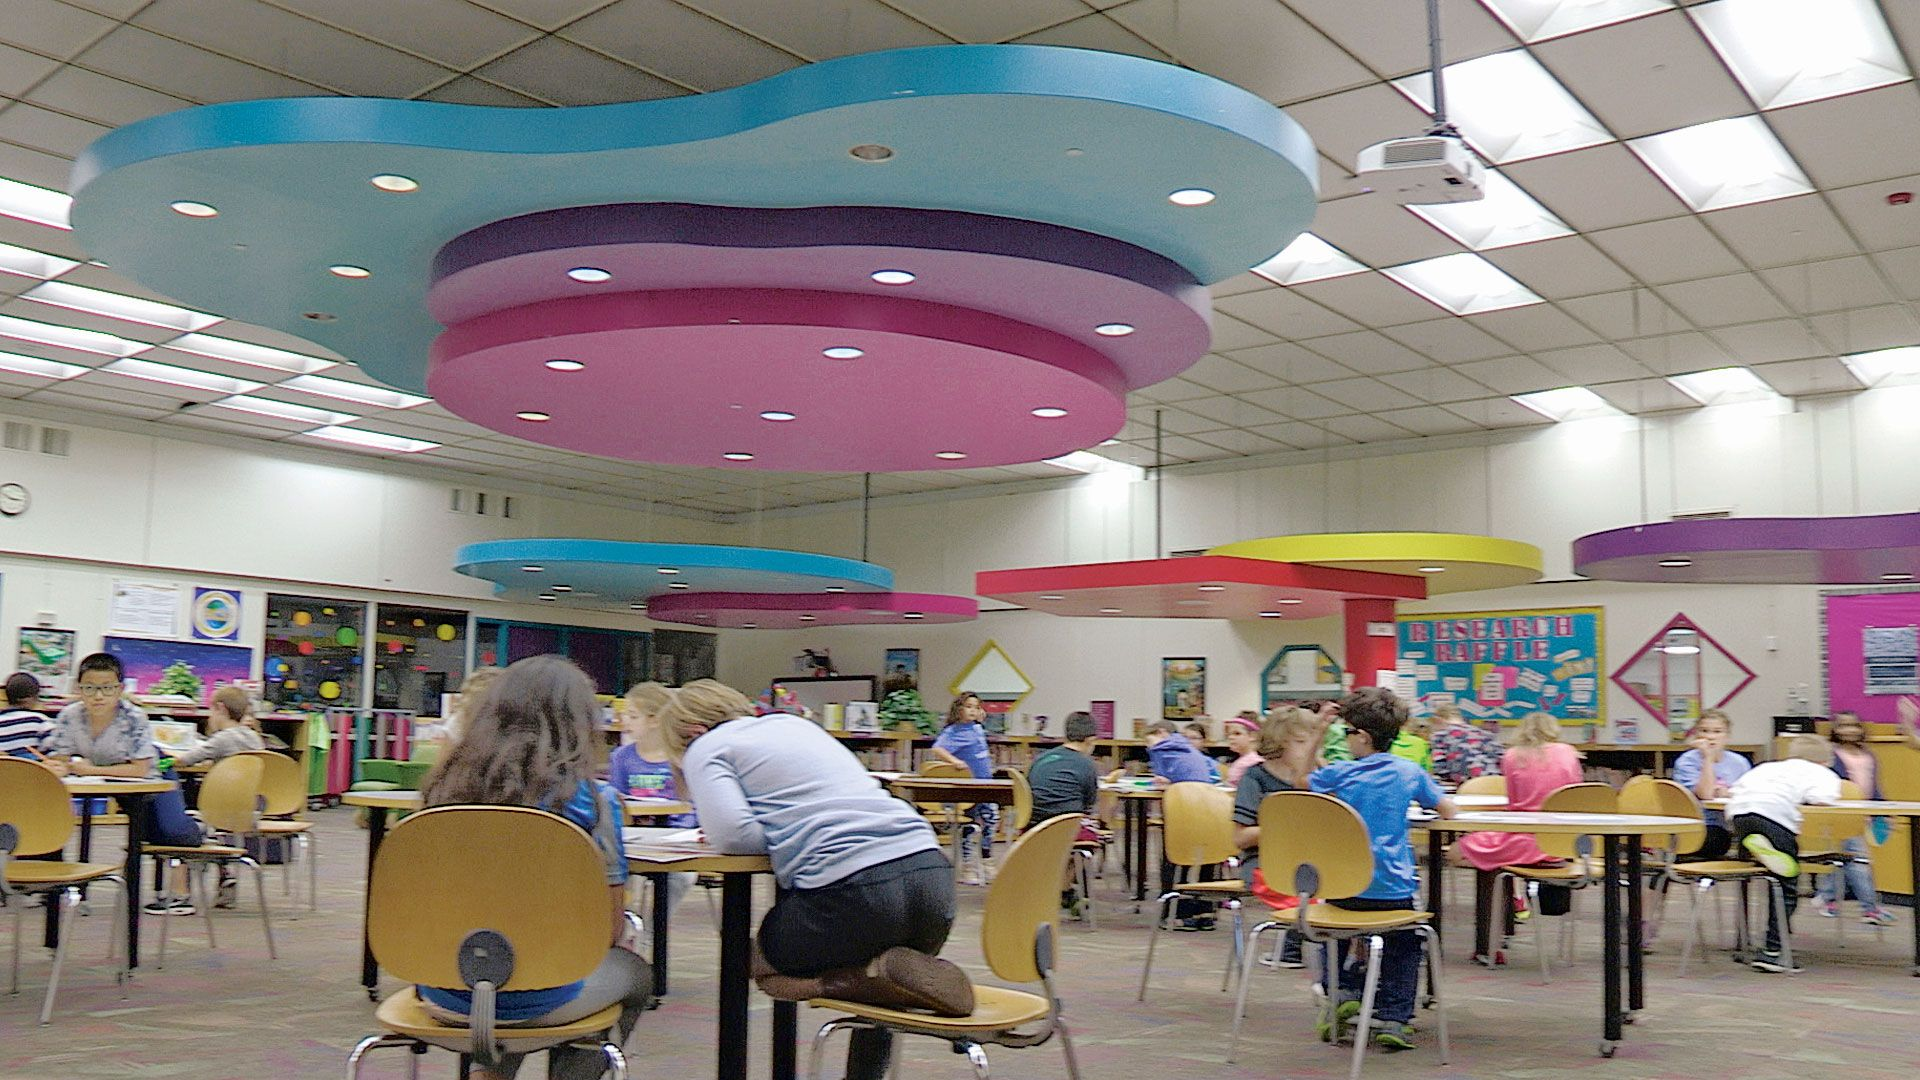 Young students are working at tables in a large multipurpose room with large colorful-shaped decorations hanging from the ceiling.